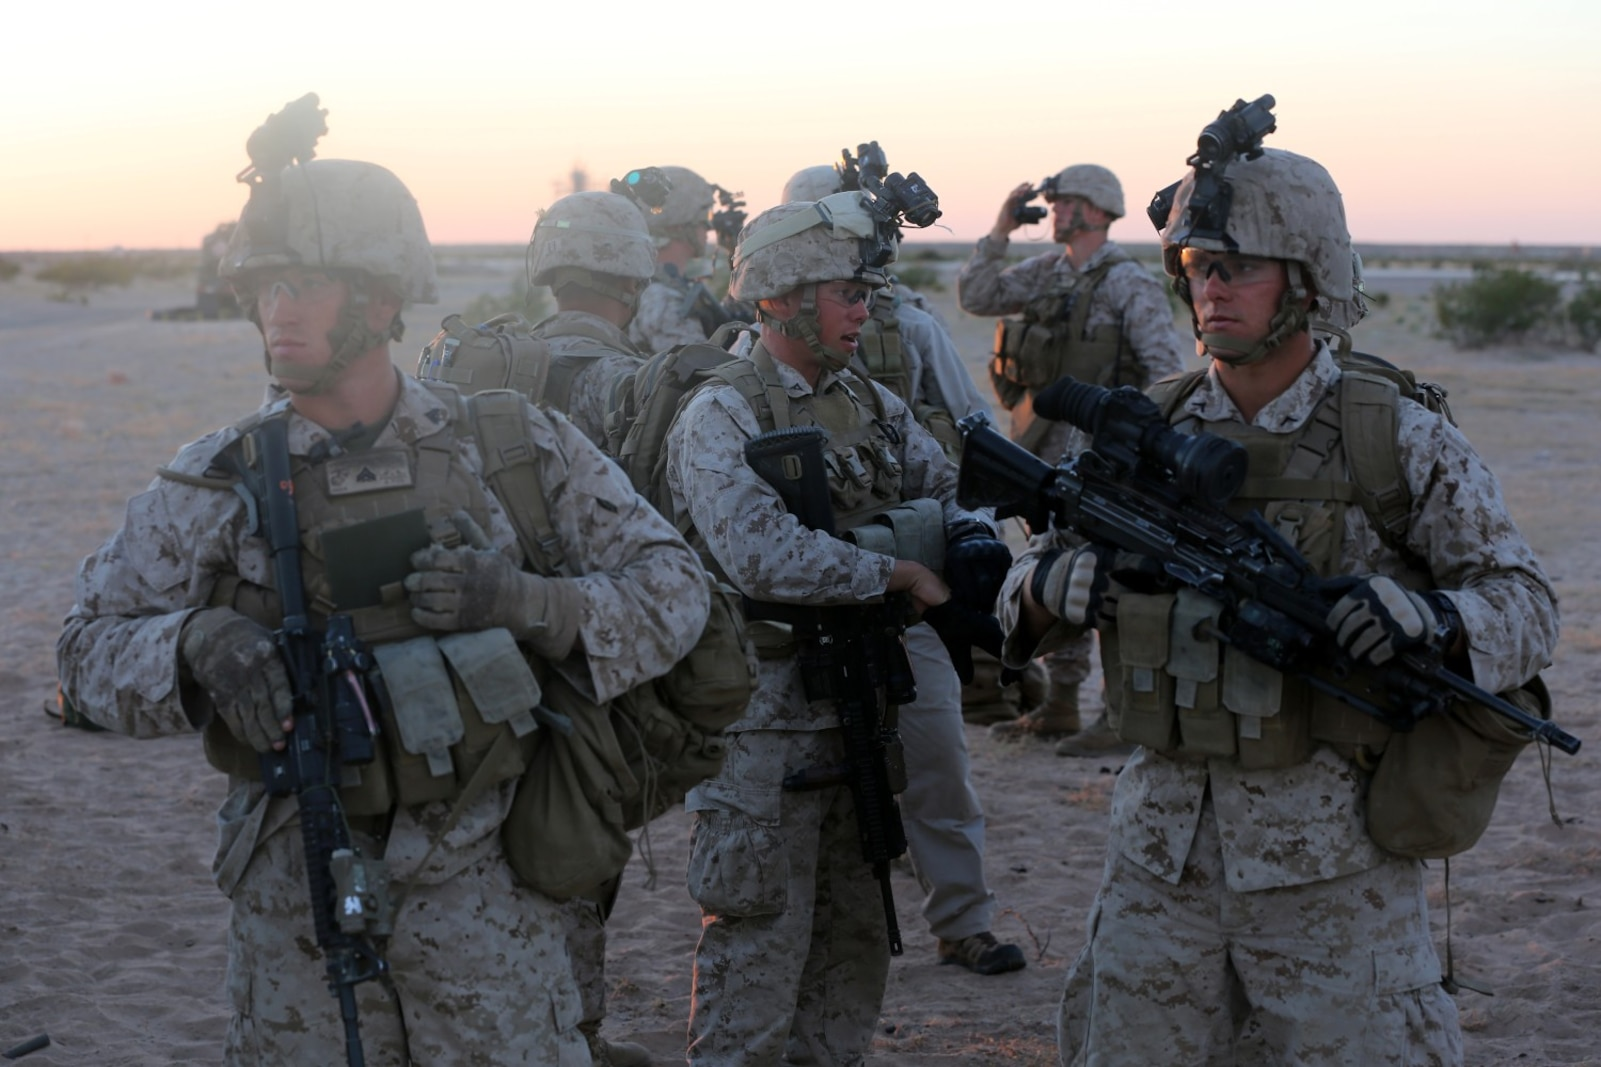 Marines with Bravo Company, 1st Battalion, 7th Marine Regiment, prepare their gear before a high value individual raid exercise here, Oct. 8, 2013. The Bravo Co. Marines inserted during night via CH-53E Super Stallion Helicopters and patrolled to a nearby road where a Marine role playing as a suspected high-ranking insurgent traveled. Once the suspected vehicle arrived, the Marines stopped the travelers, searched and questioned each individual and searched the vehicle for weapons and other forms of intelligence. The battalion is participating in Weapons Training Instructor course before deploying to Afghanistan this spring.